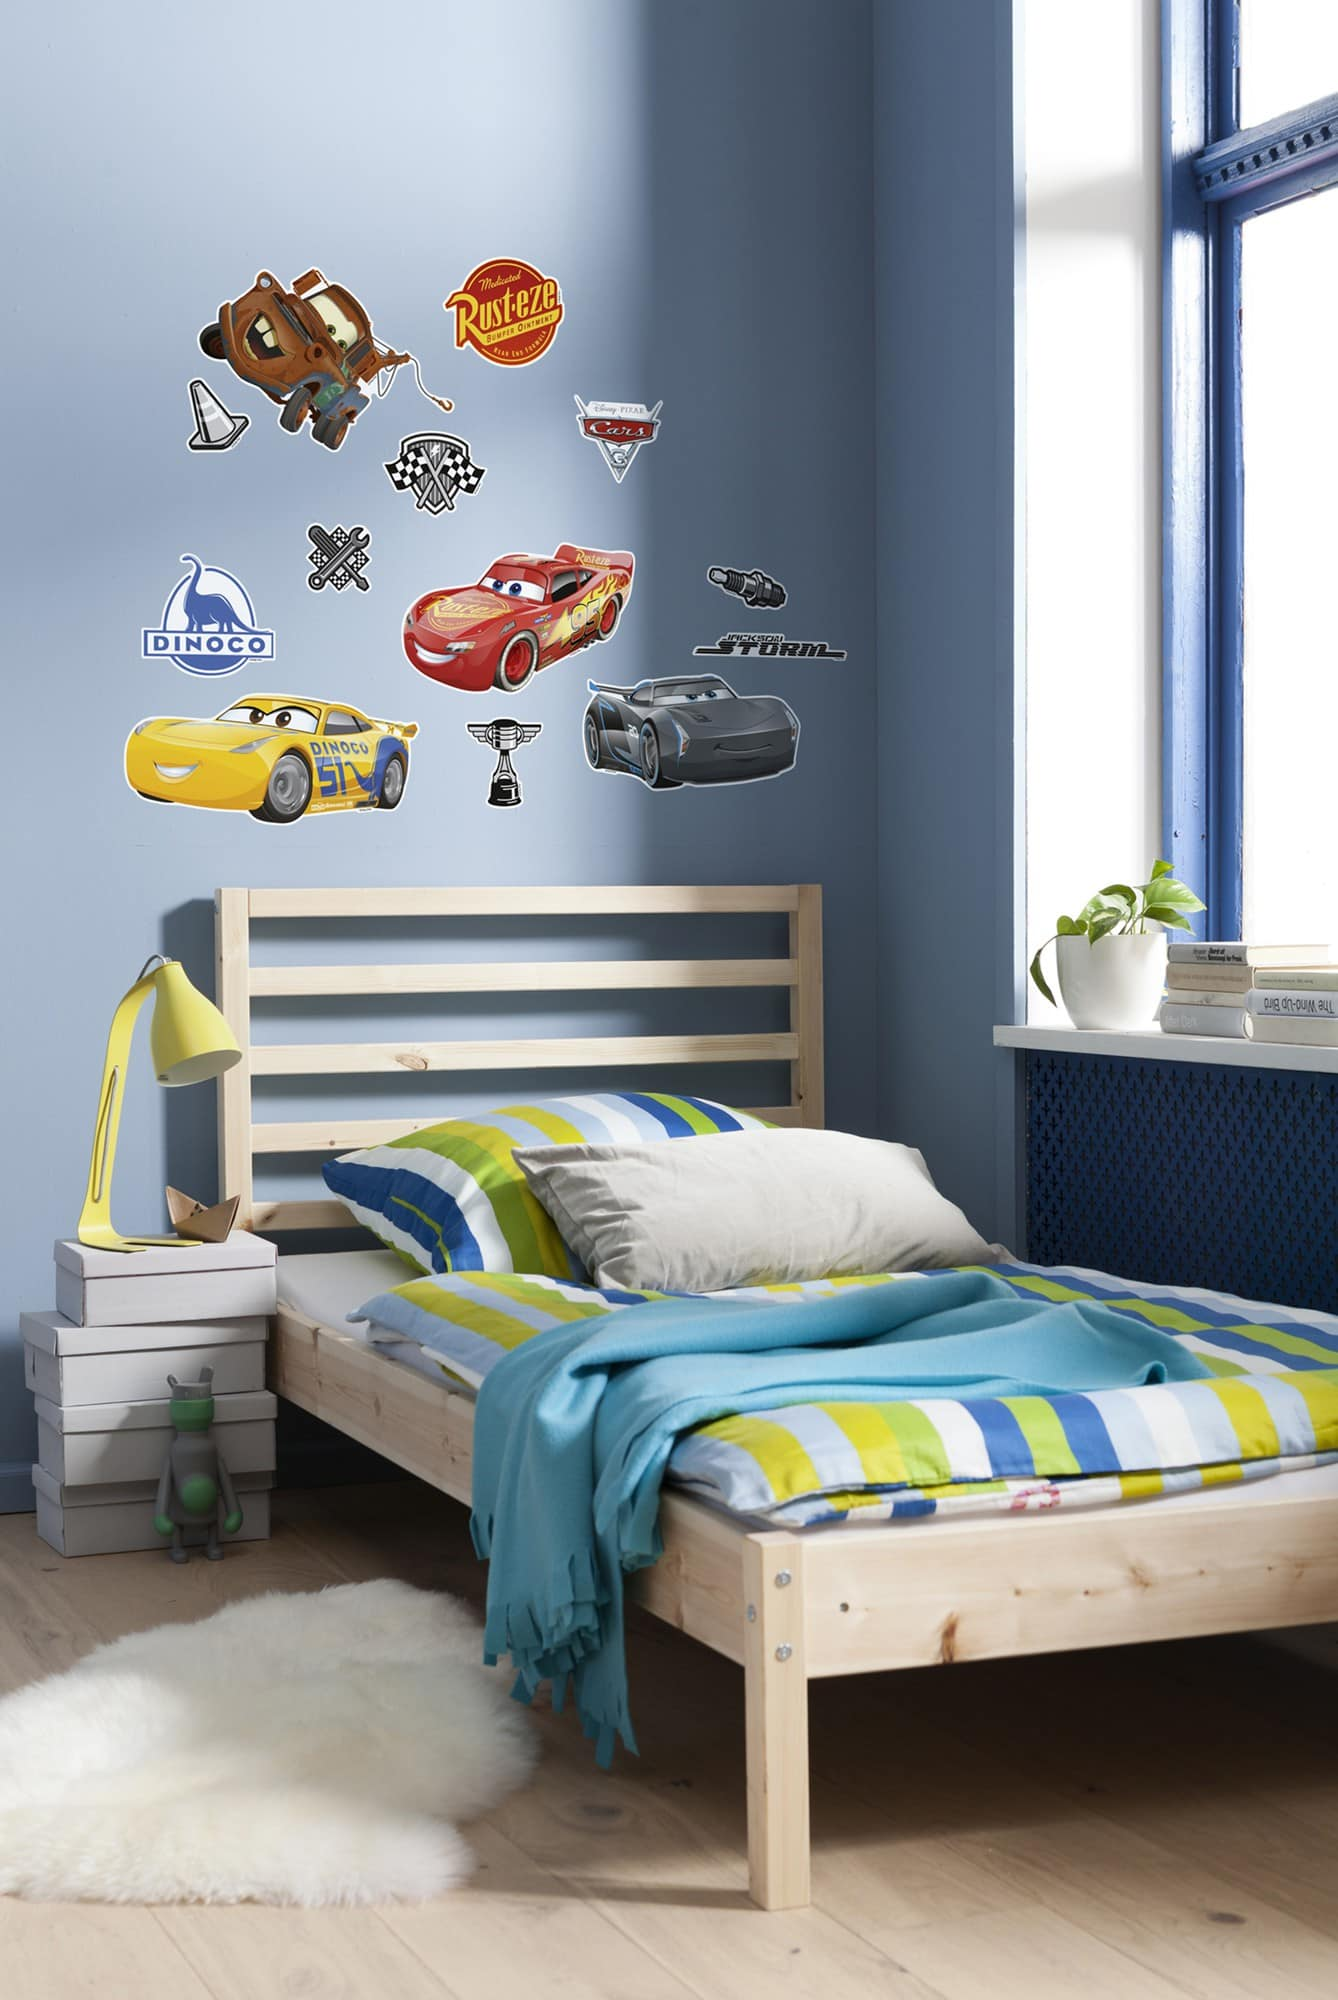 Disney cars wandtattoo kinderzimmer cars 3 komar deco - Kinderzimmer cars ...